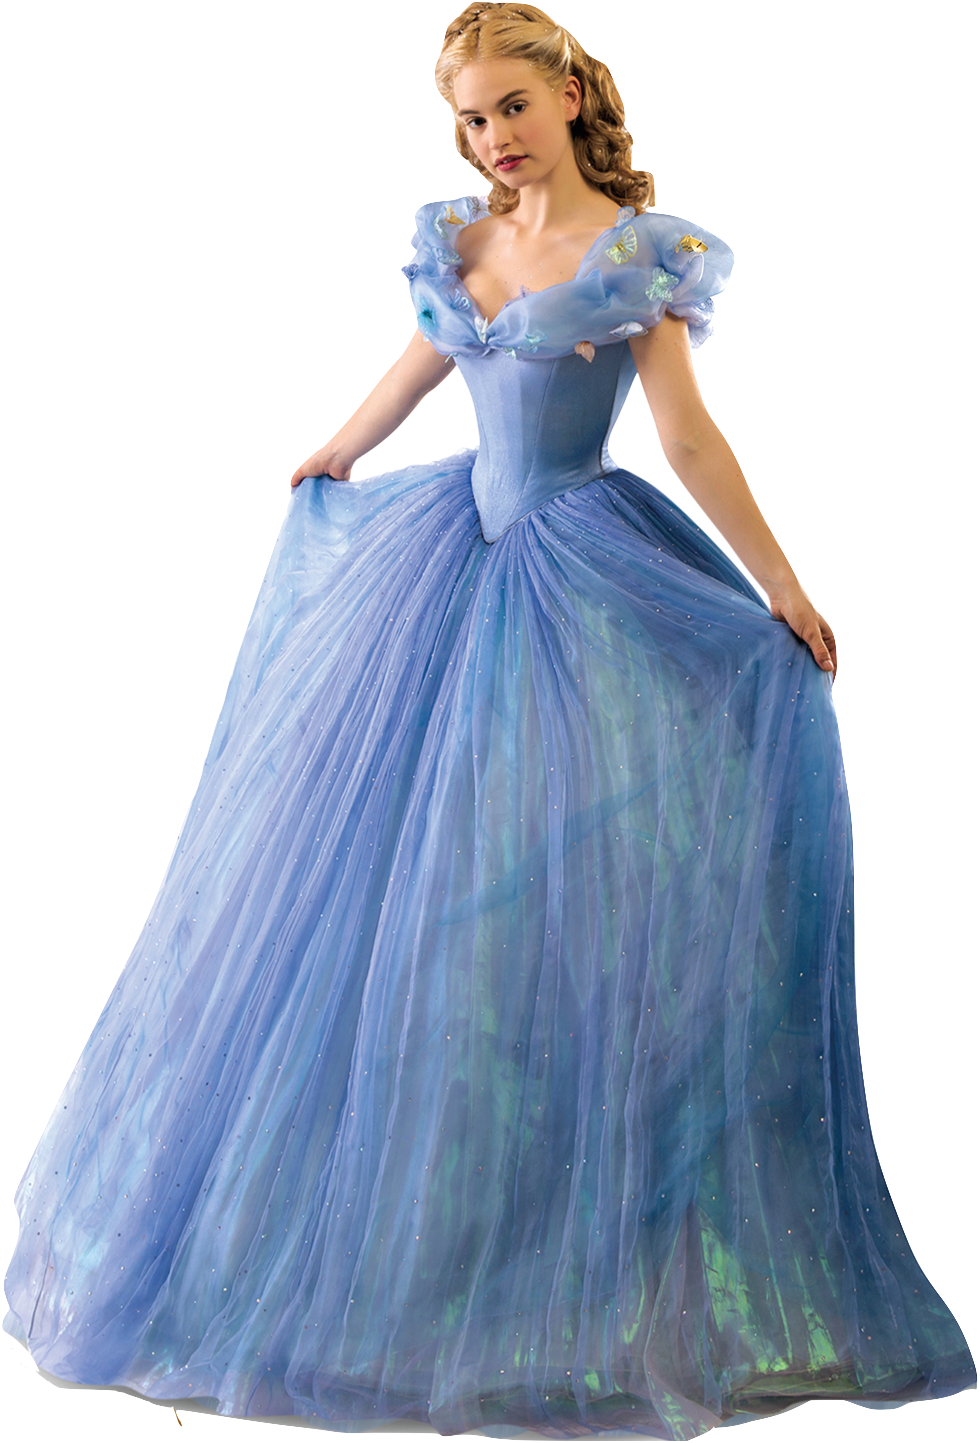 lily_james_as_cinderella_full_body_2_png_by_nickelbackloverxoxox ...